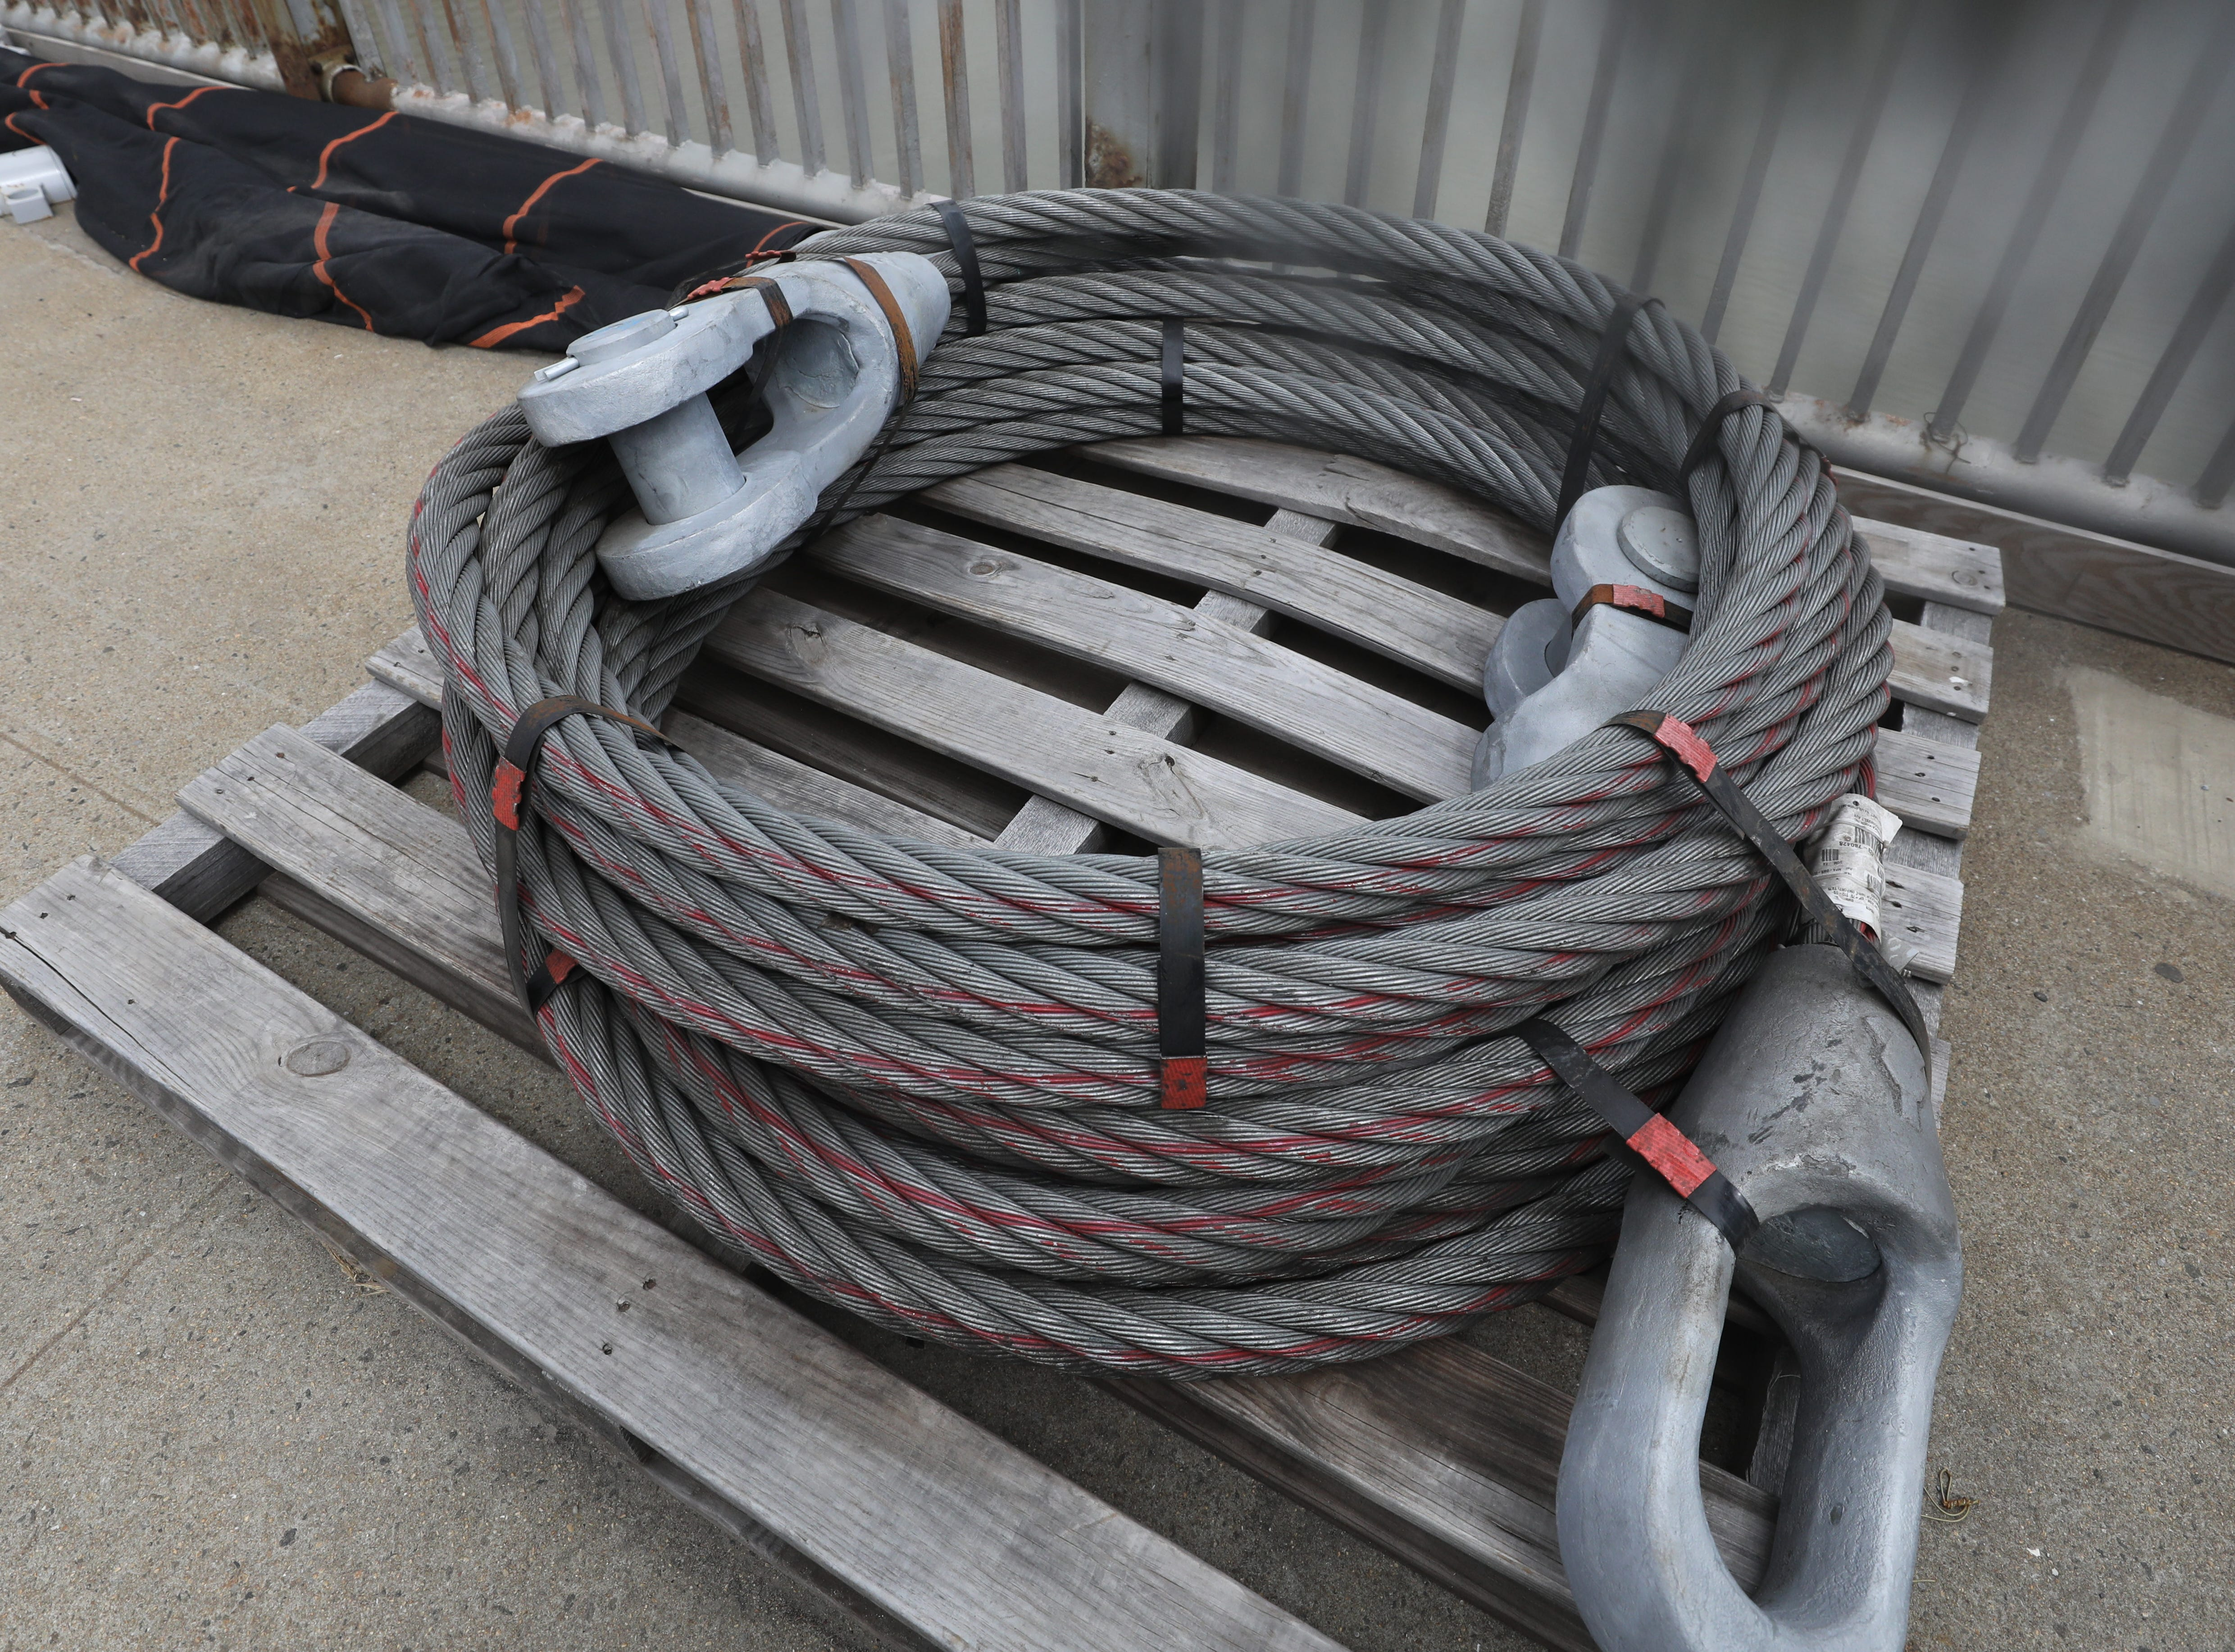 One of the suspender ropes that is to be used attached to the barrel cable to help hold up the roadway.